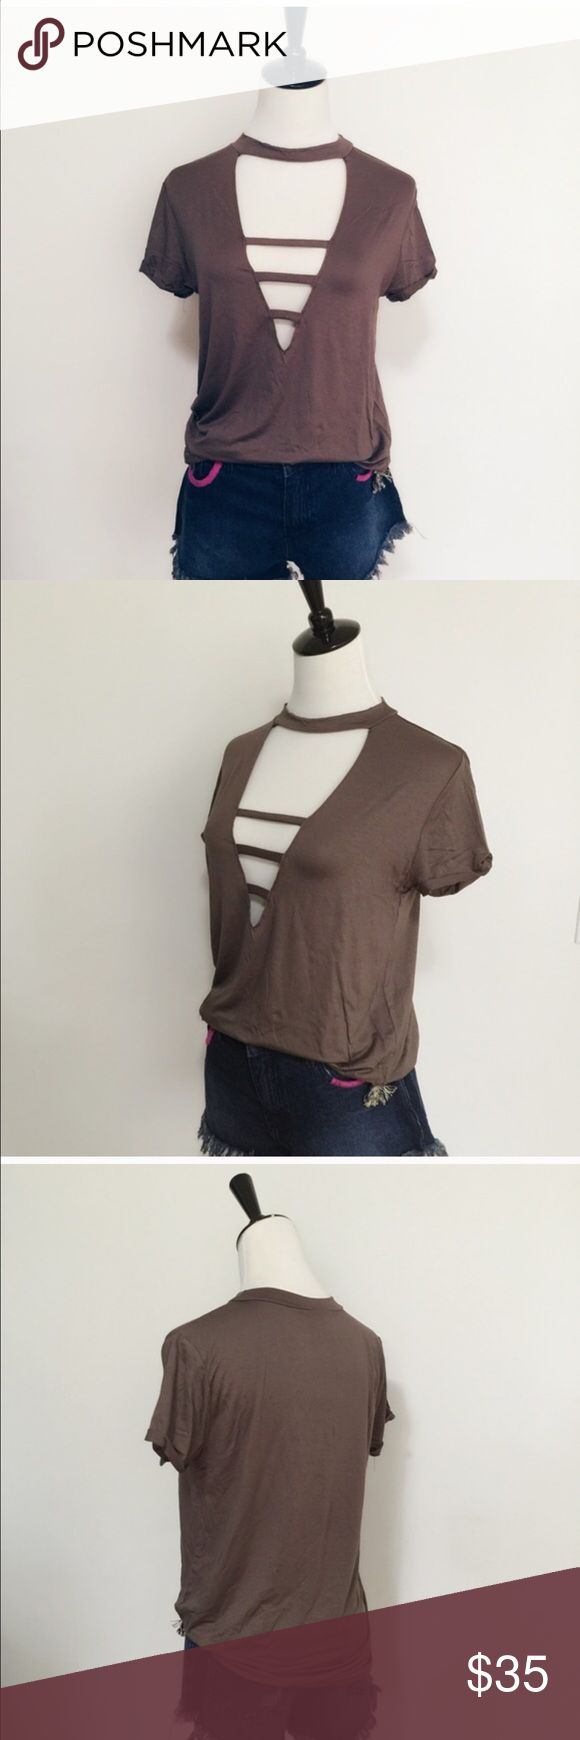 Boho ladder front shirt sleeve t shirt toP NWT Trendy front cut out ladder style short sleeve top in a beautiful mocha color. Lightweight material, 95 % rayon 5% spandex April Spirit Tops Tees - Short Sleeve